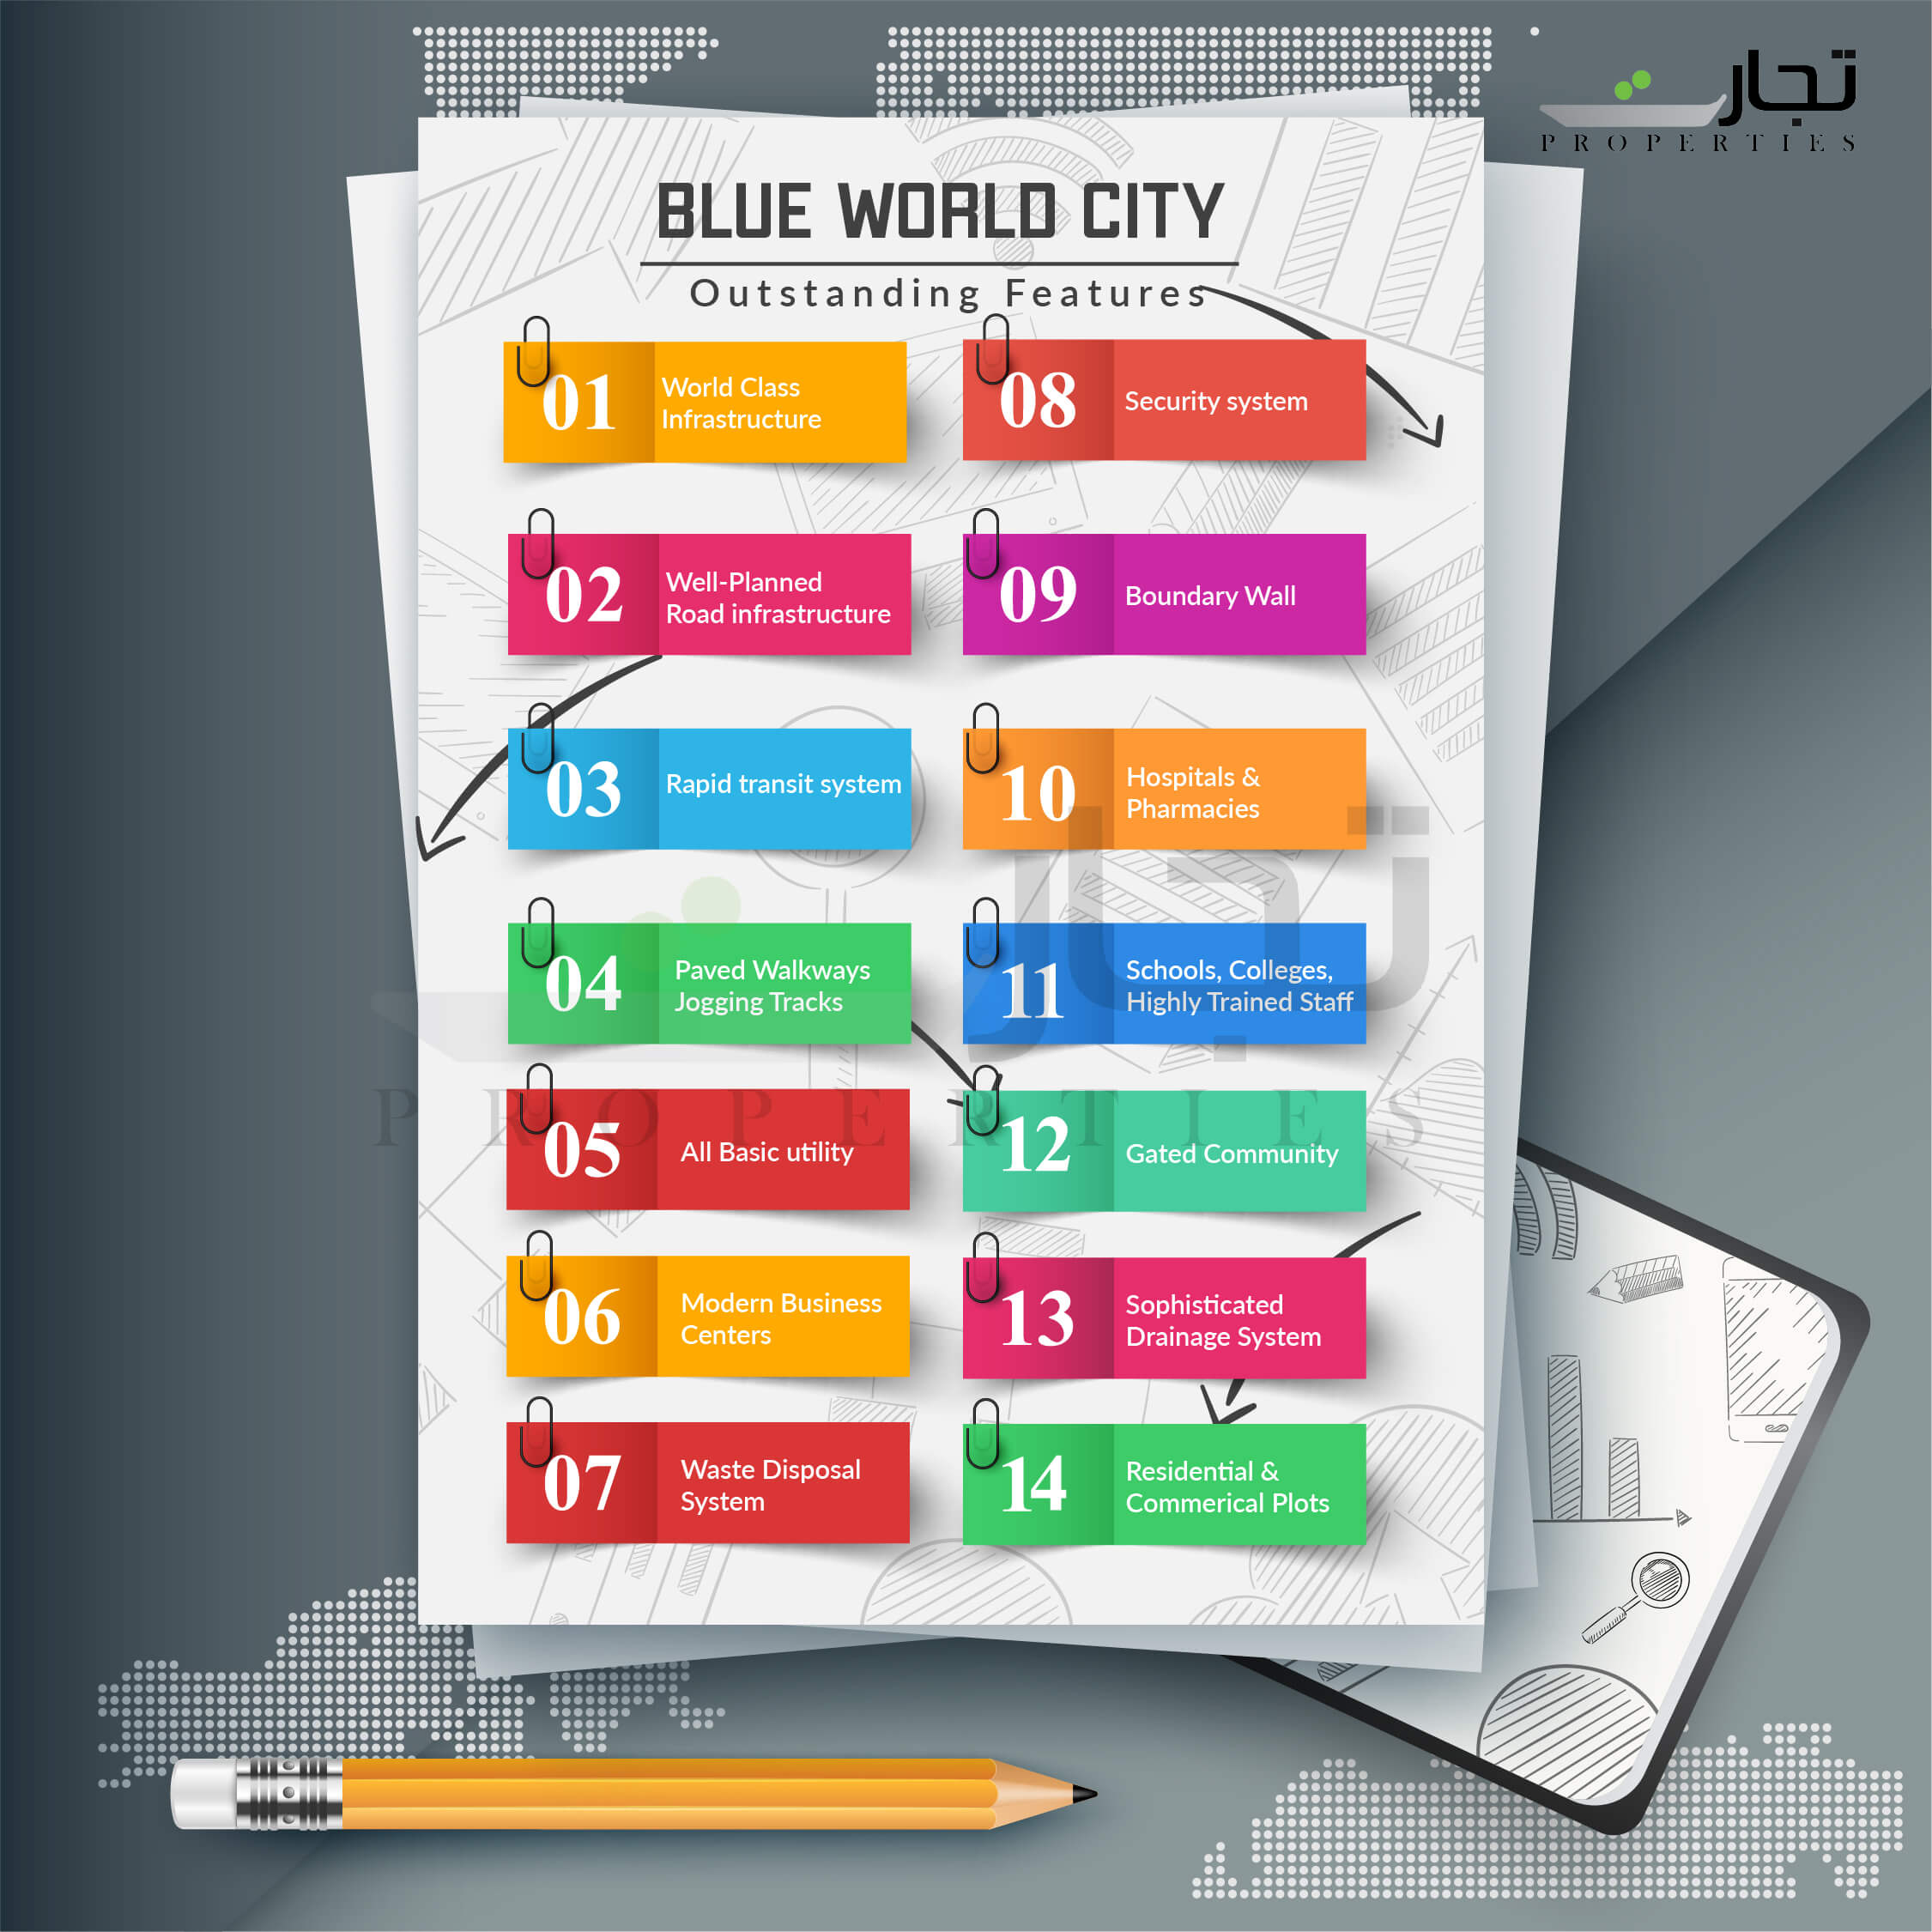 Features of Blue World City